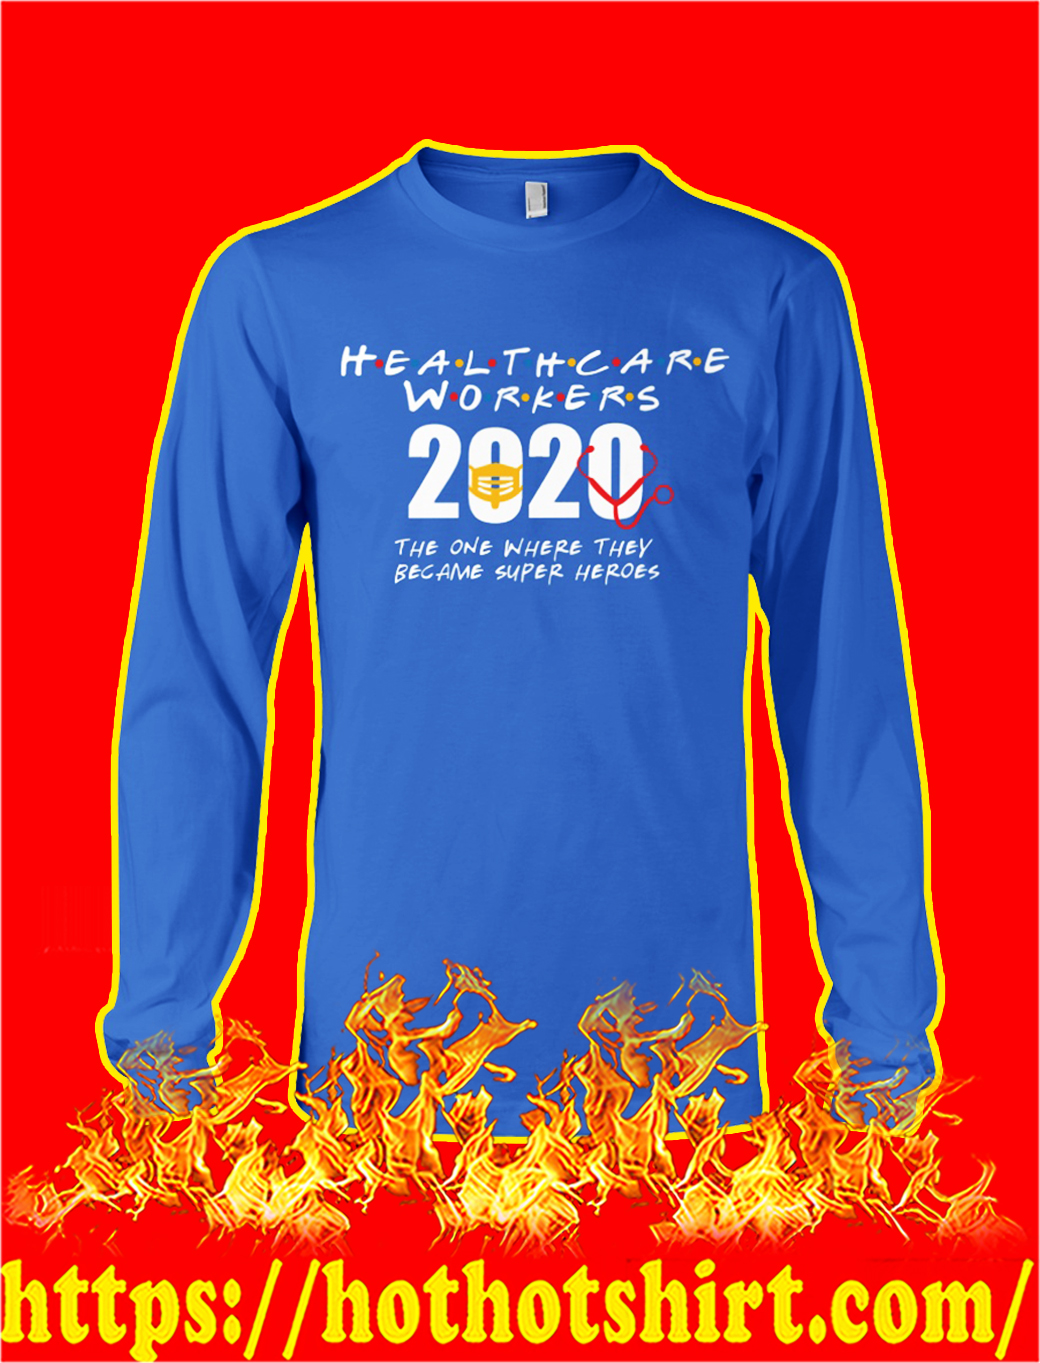 Health care workers 2020 the one where they became super heroes longsleeve tee